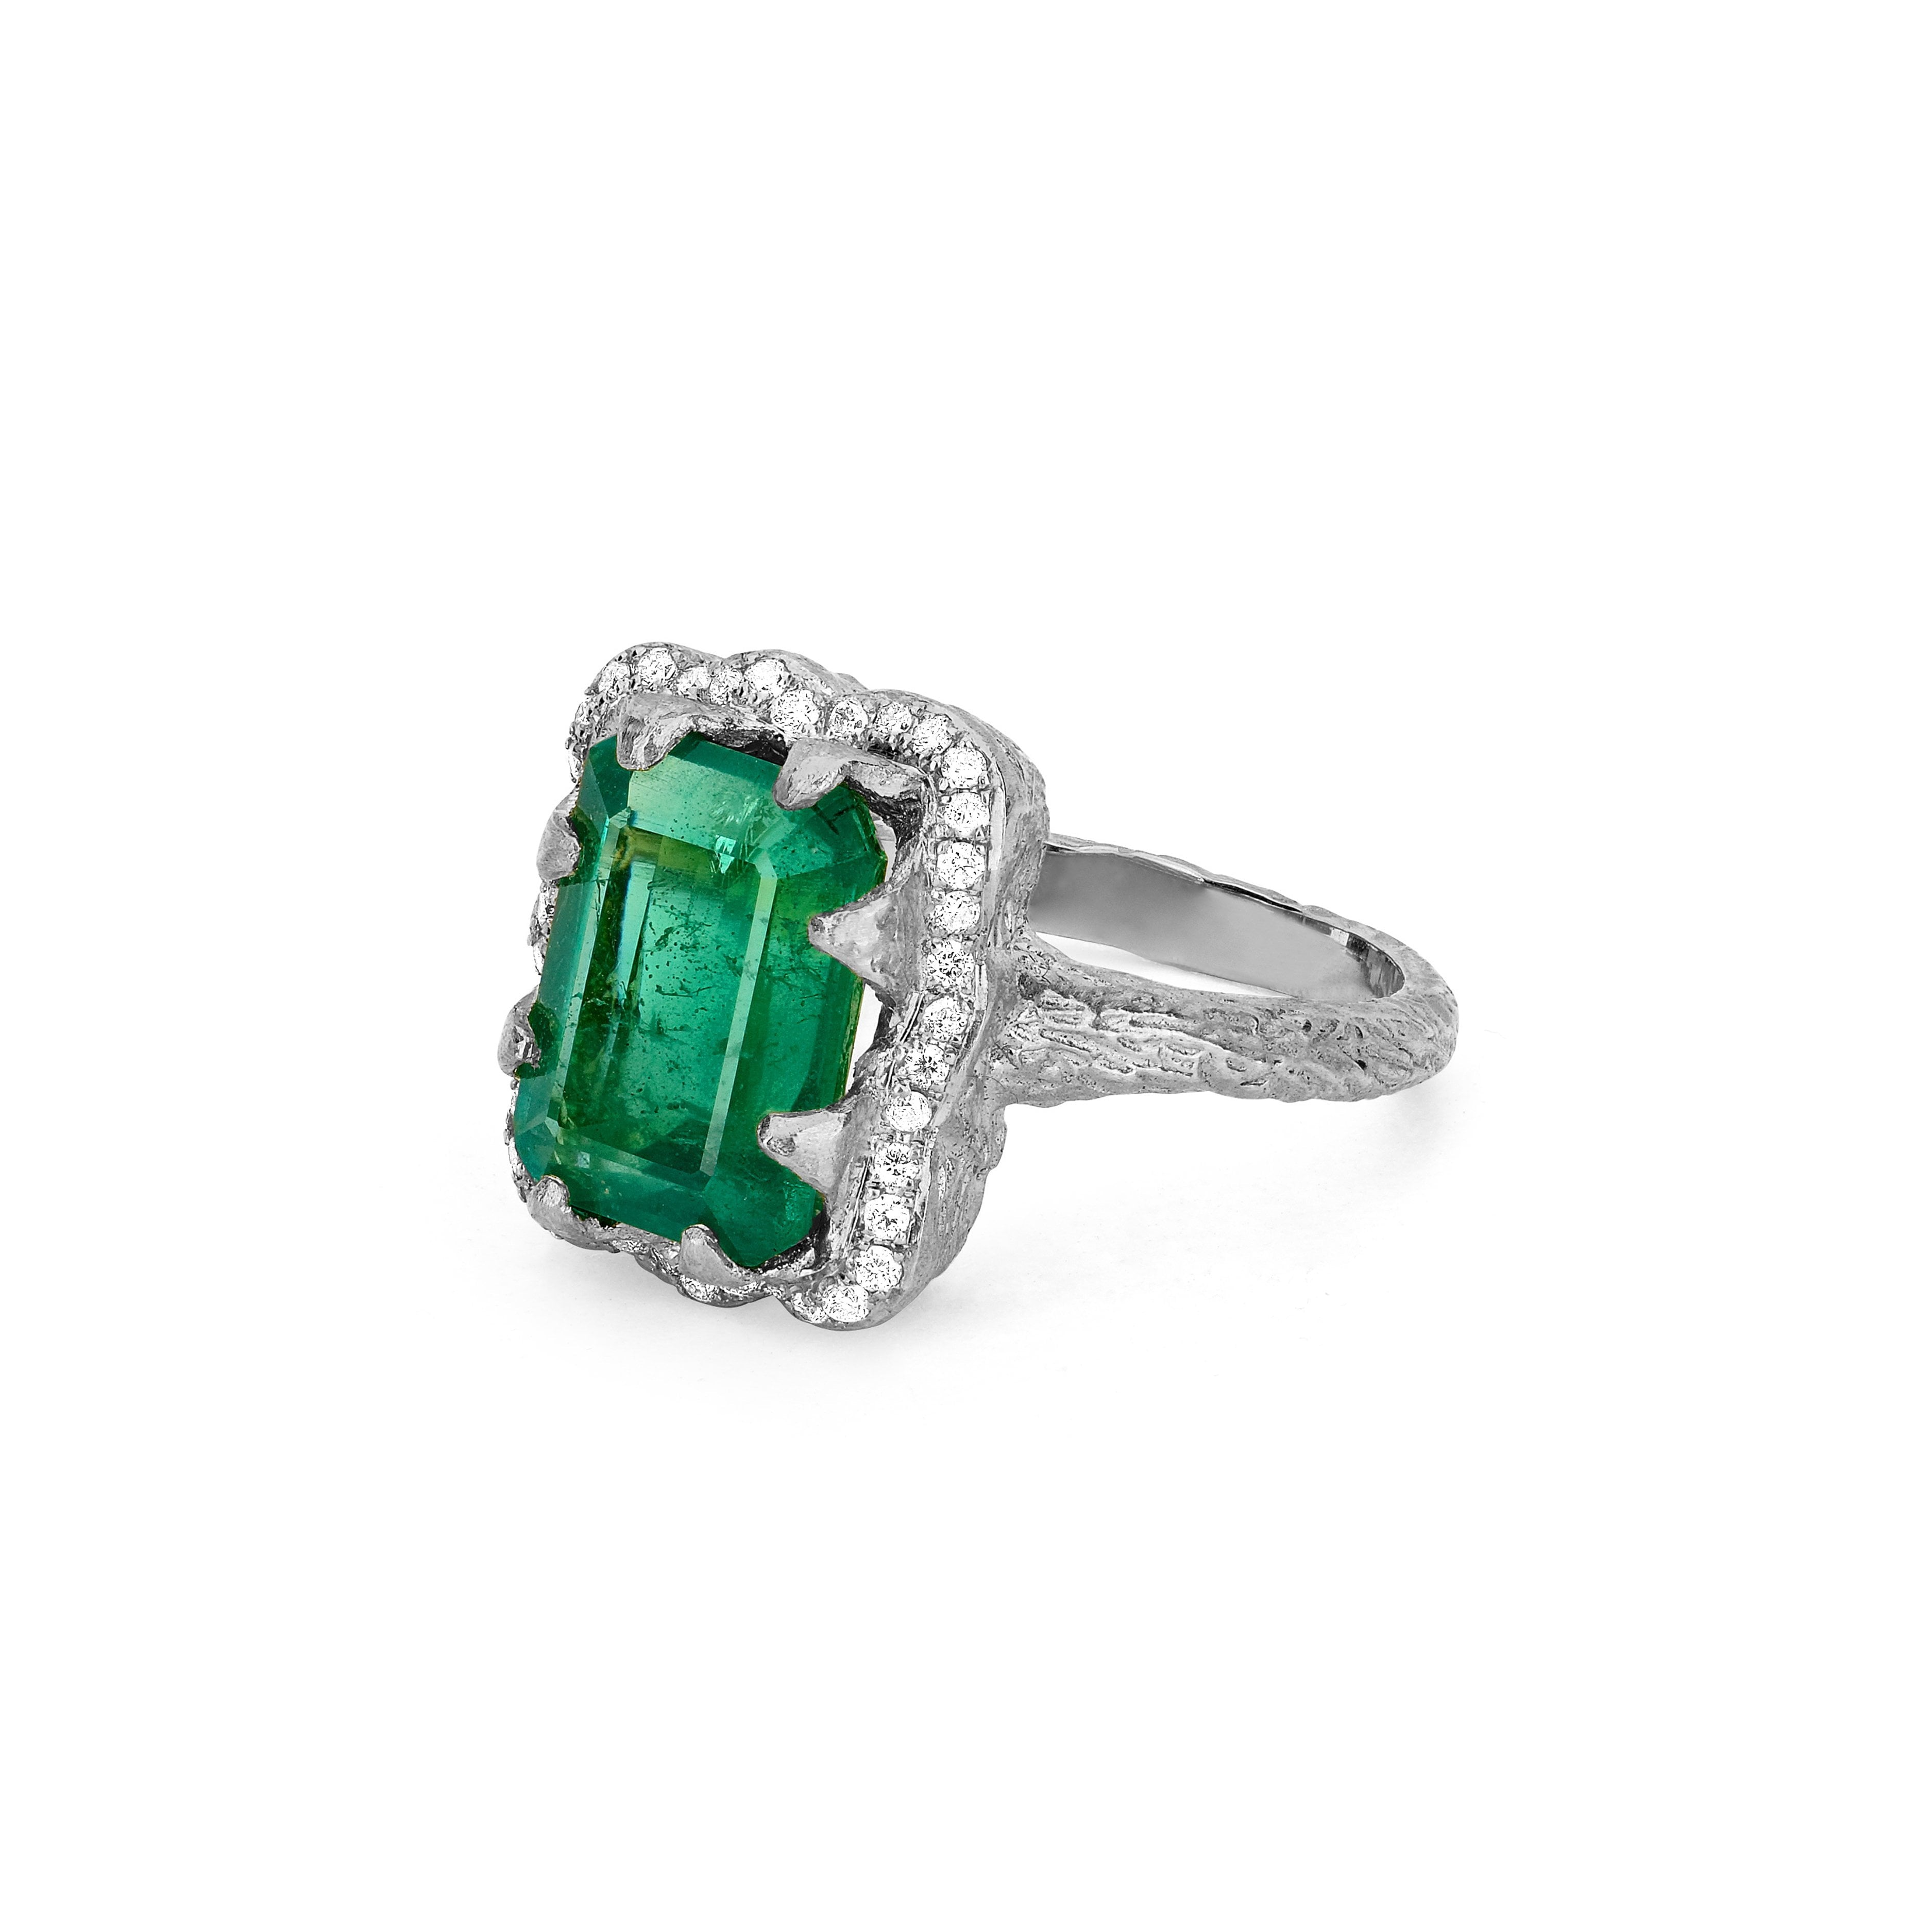 18k Queen Emerald Cut Emerald Ring with Full Pavé Diamond Halo